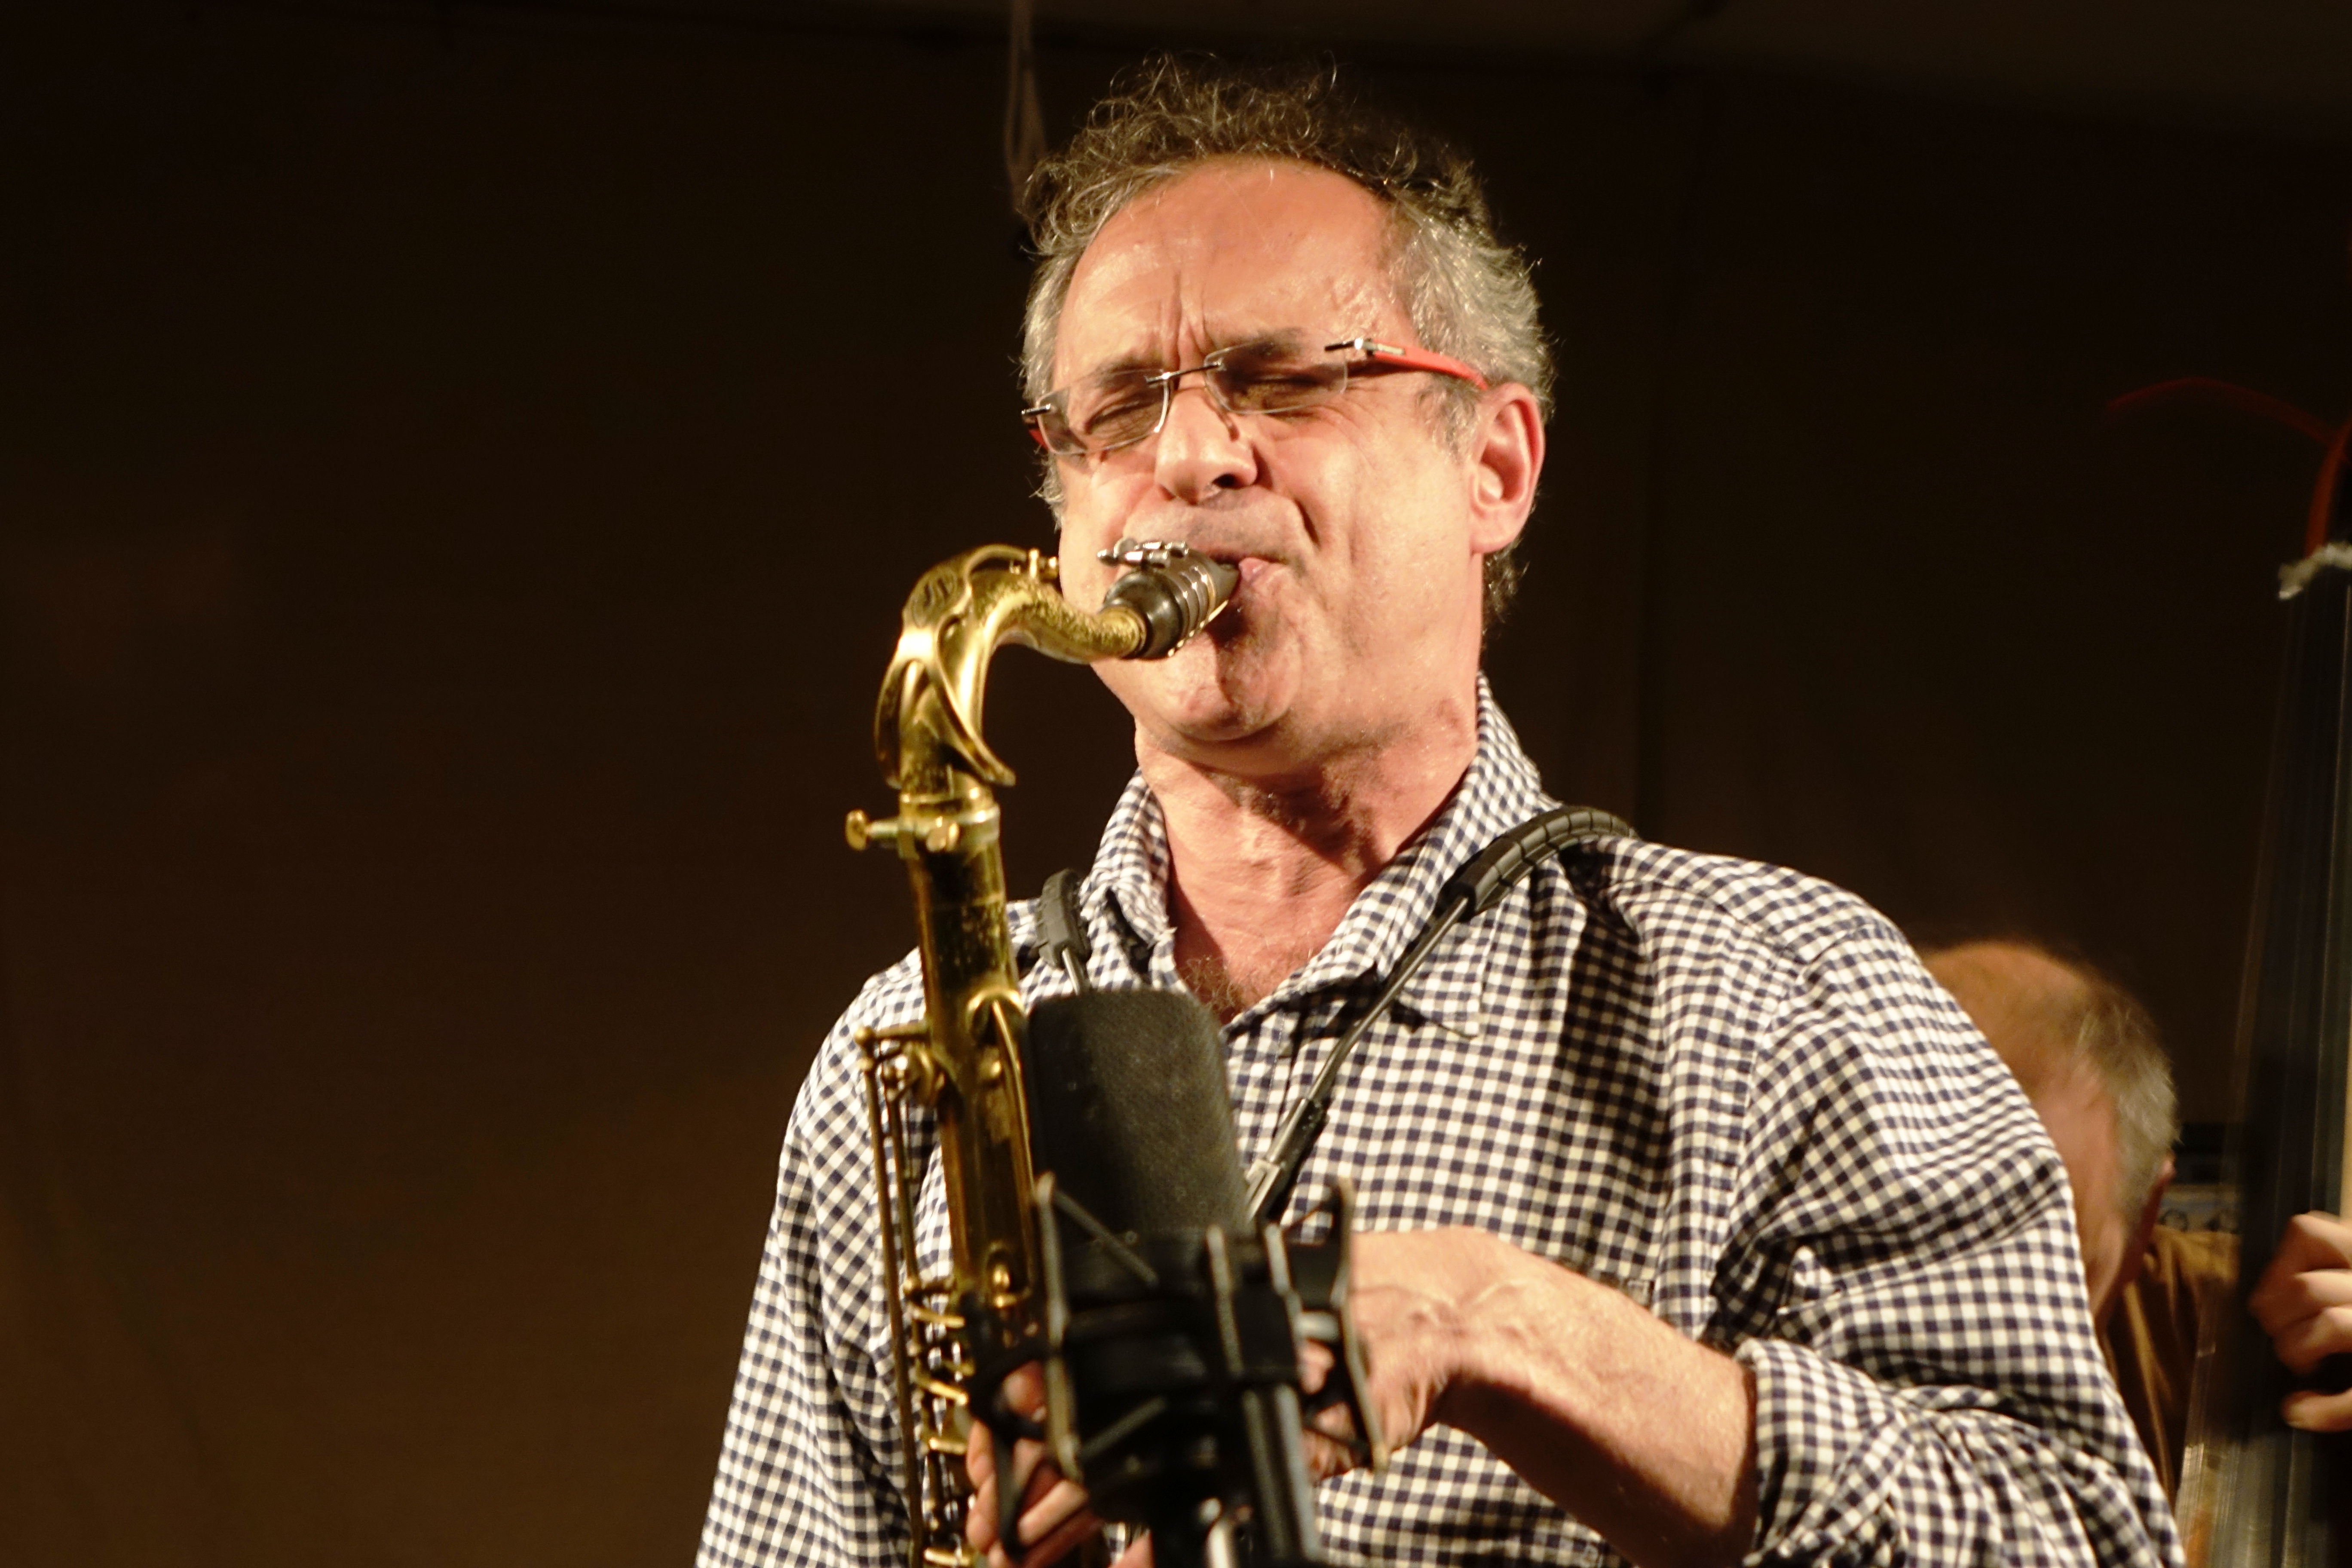 Ivo Perelman at Cafe Oto, London in October 2018